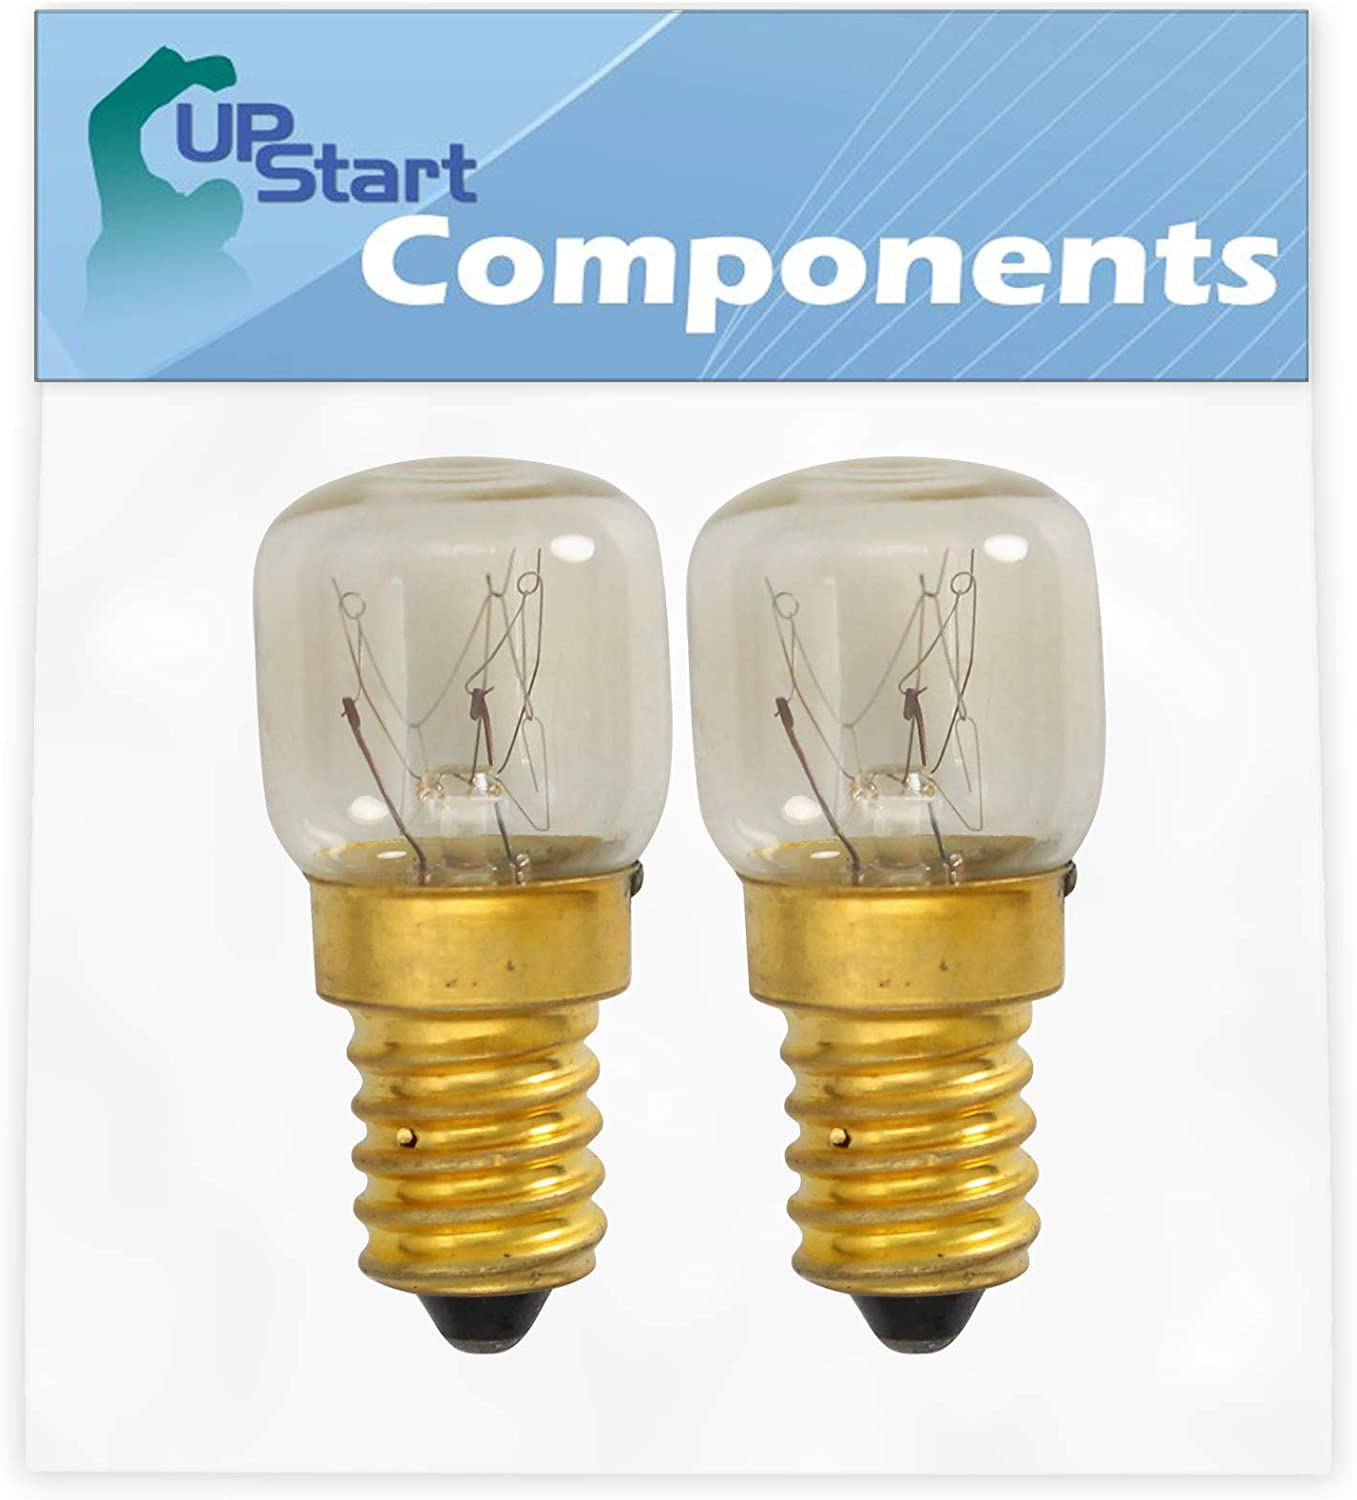 2-Pack 4173175 Light Bulb Replacement for Whirlpool & KitchenAid Ovens - Compatible with Whirlpool WP4173175 & Part Number AP6009180, 4173175, 3178521, 4452166 Light Bulbs